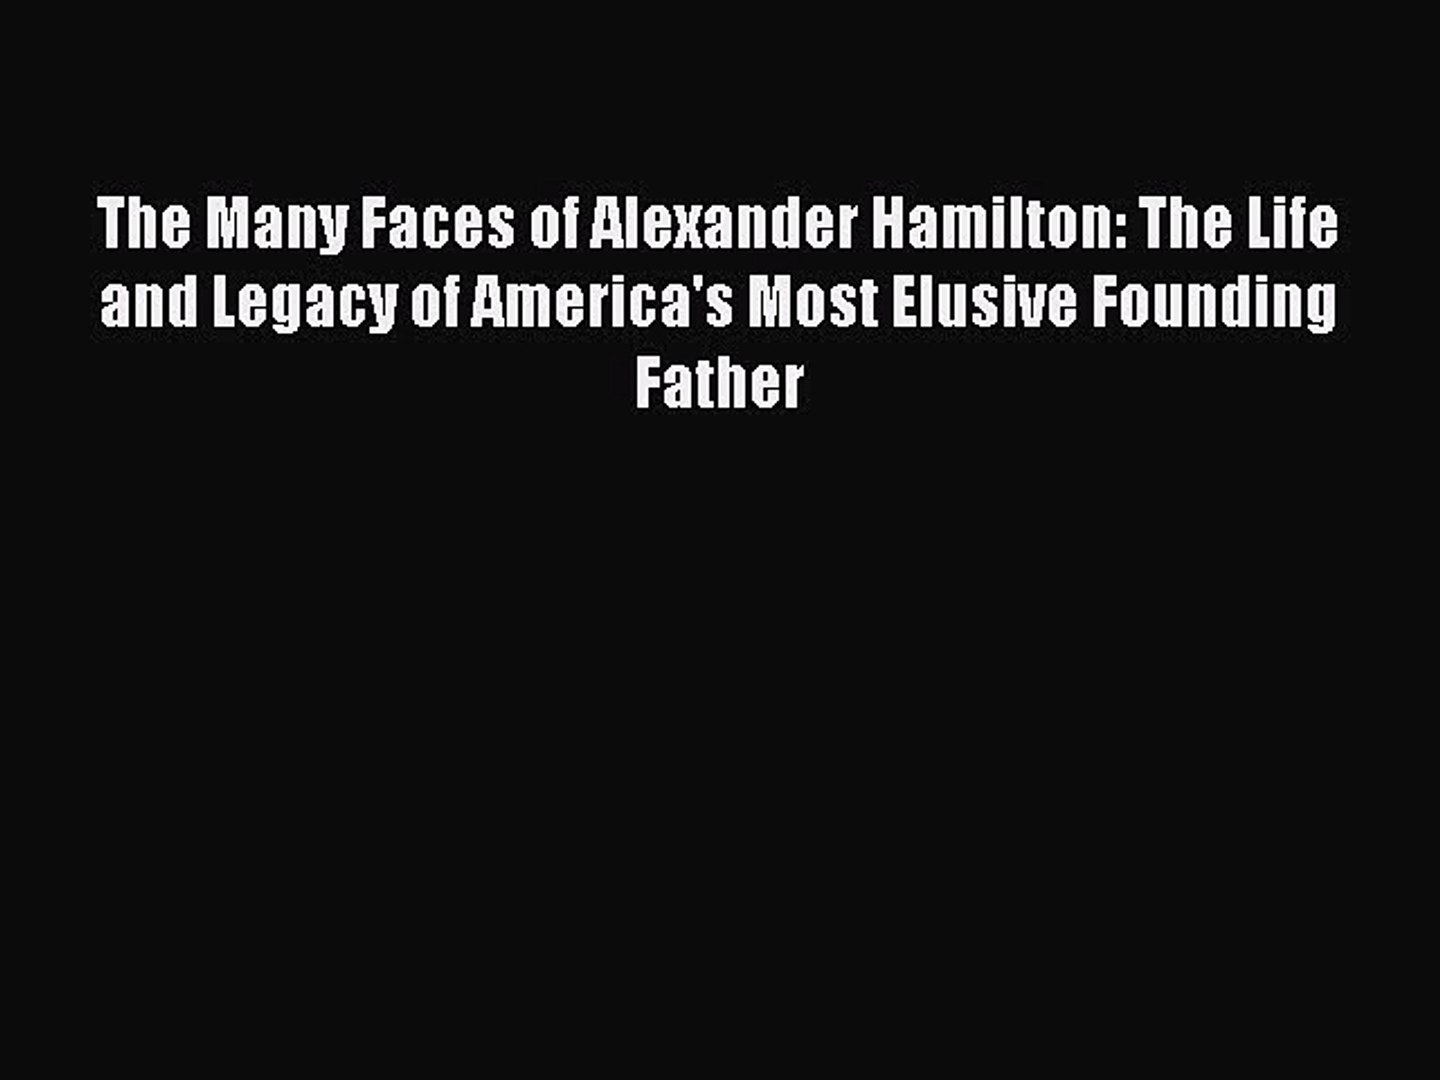 [Read book] The Many Faces of Alexander Hamilton: The Life and Legacy of America's Most Elusive